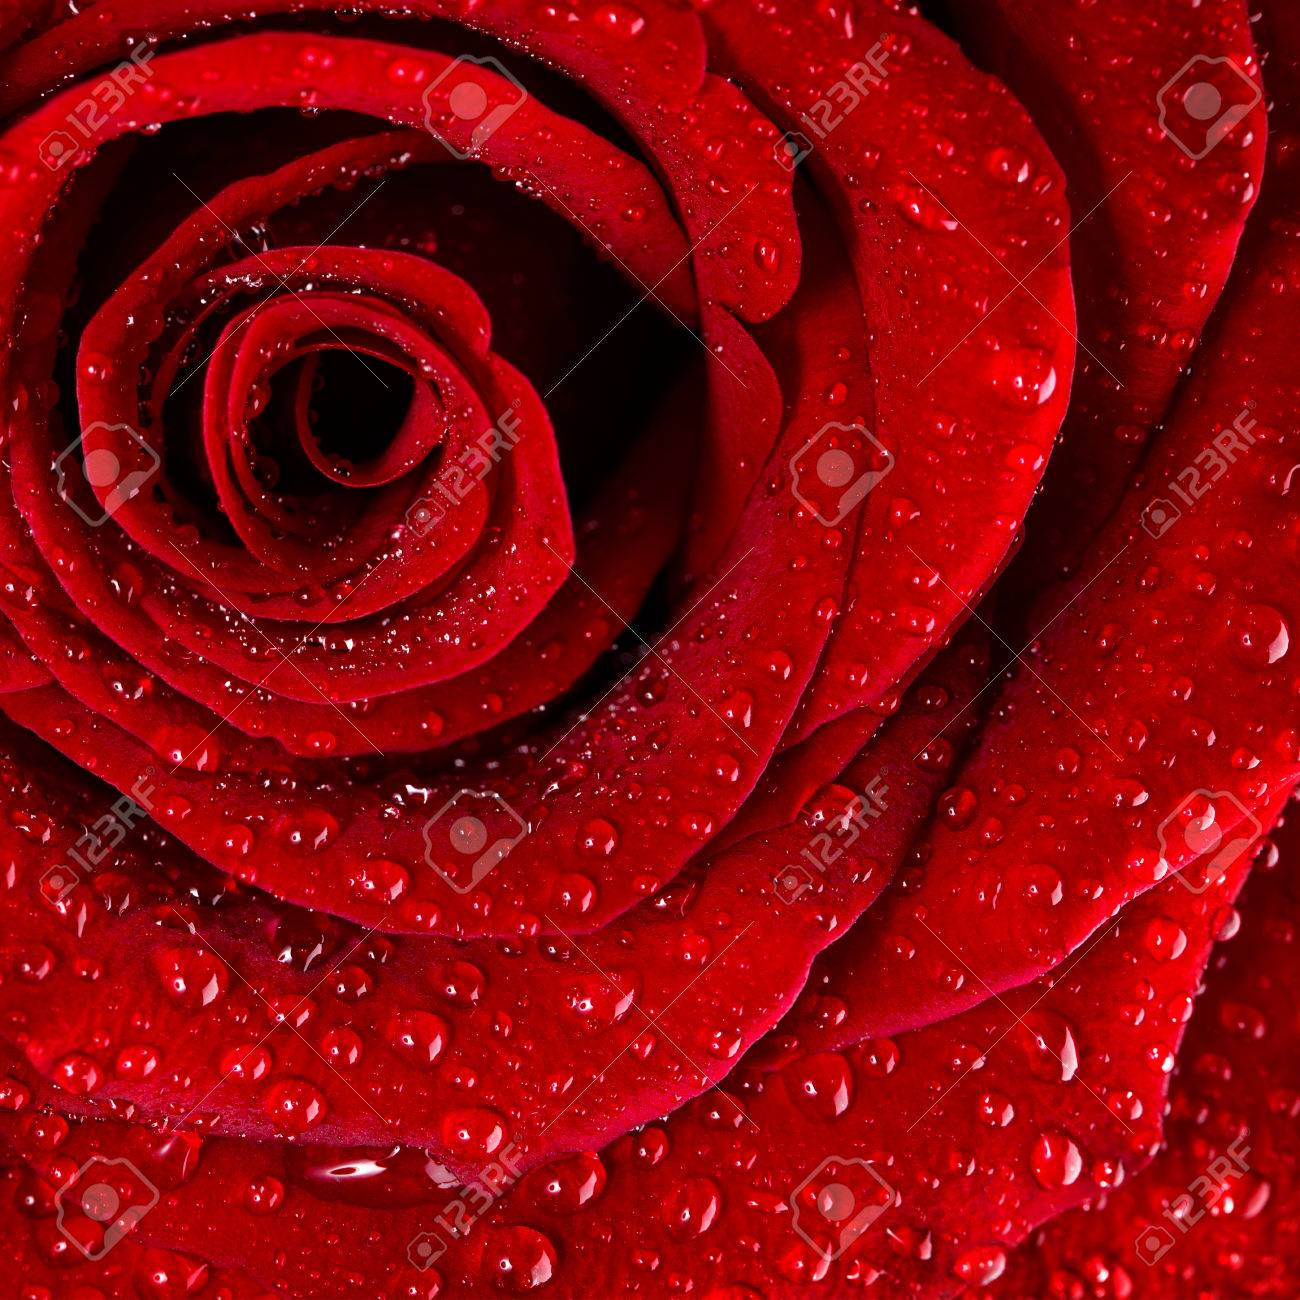 Red Rose Background Dew Drops On The Gentle Fresh Flower Petals